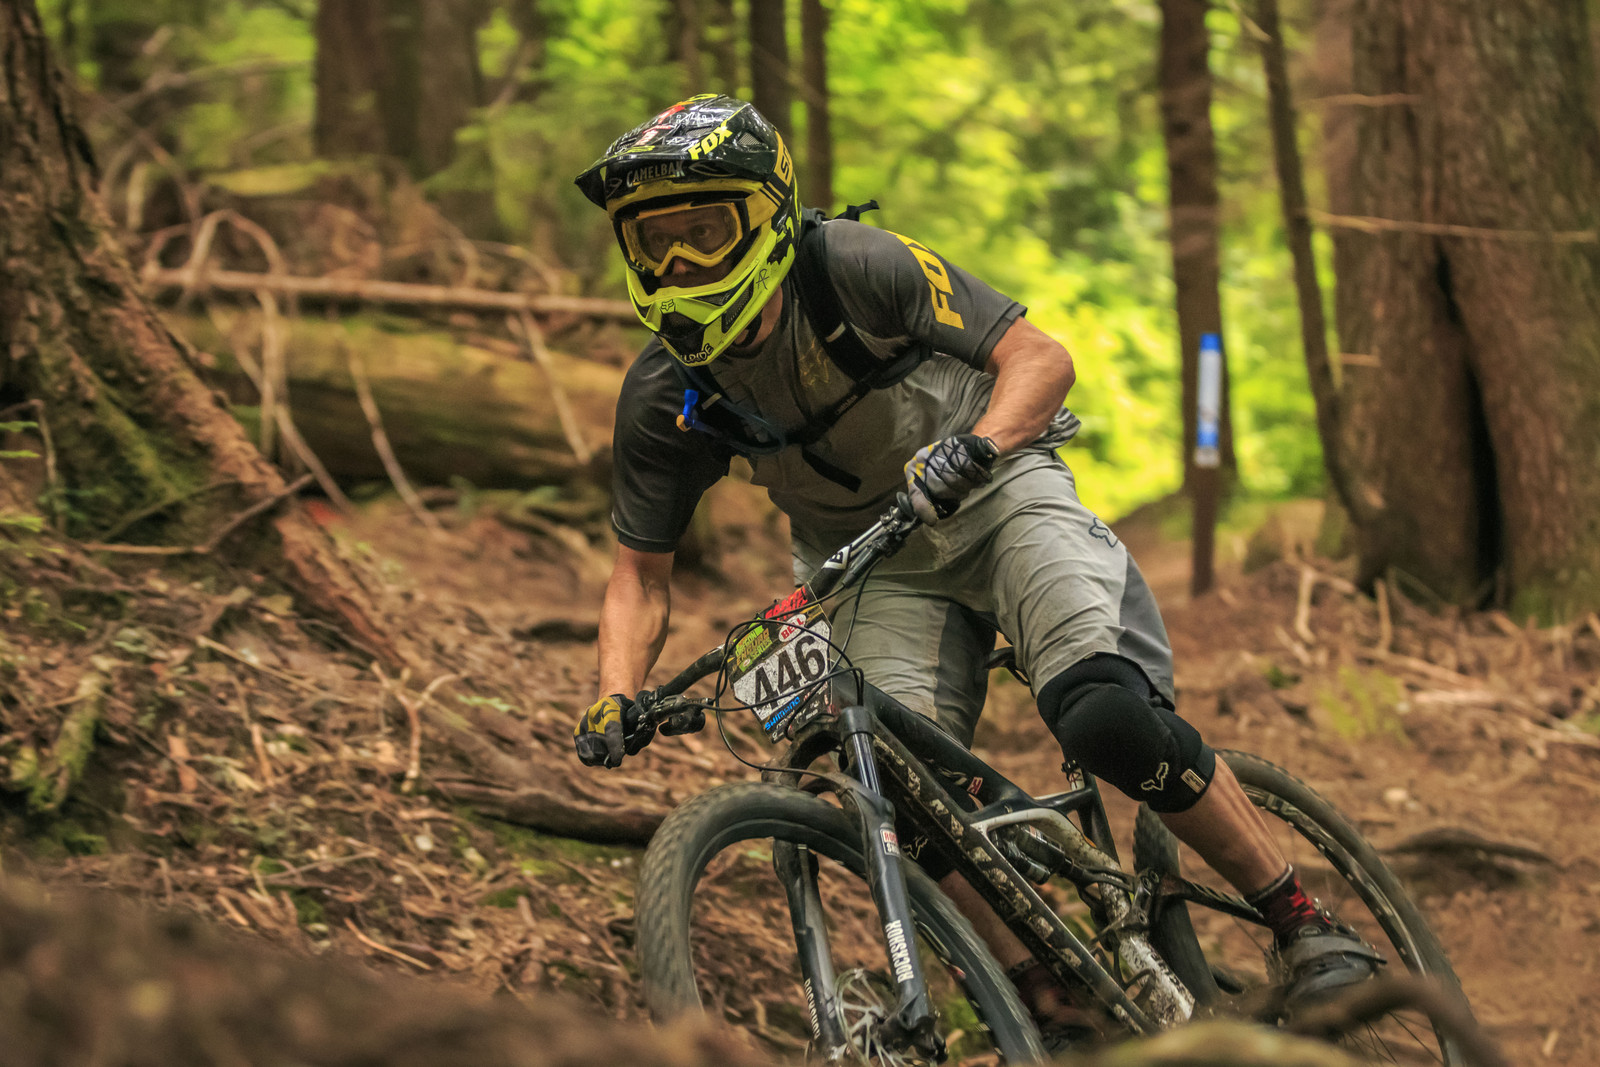 Kirt Voreis, Winner of the Oregon Enduro, Cold Creek - 2014 Oregon Enduro, Cold Creek - Mountain Biking Pictures - Vital MTB